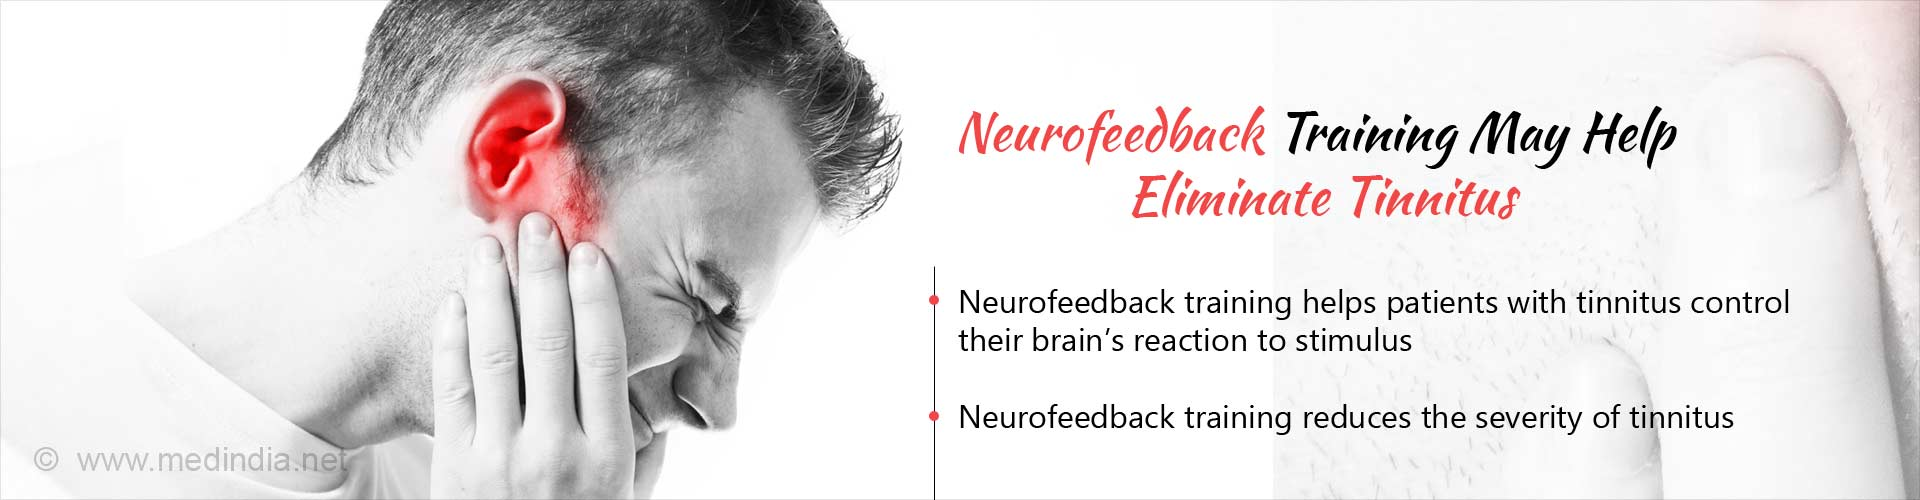 Neurofeedback Training May Help Eliminate Tinnitus